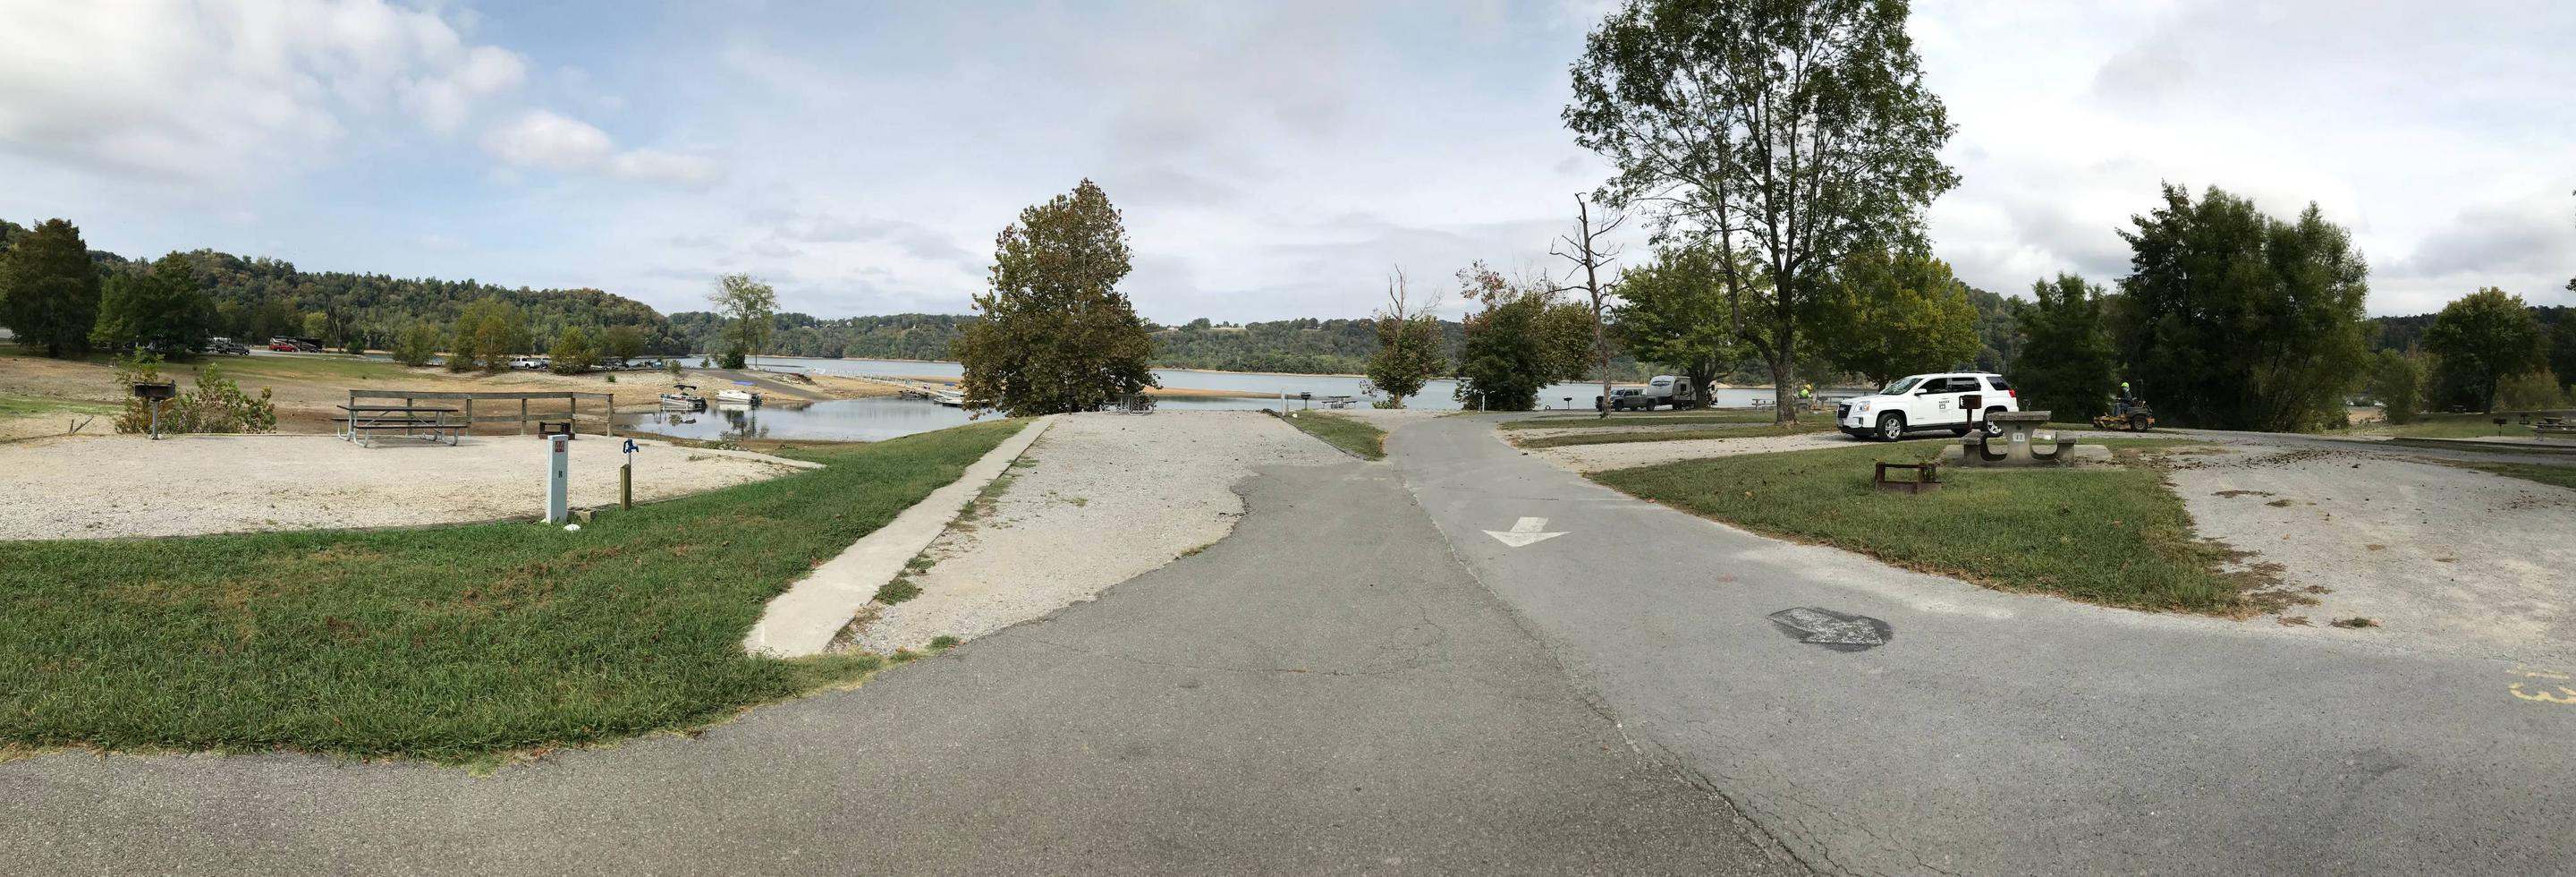 OBEY RIVER PARK SITE # 42 PANORAMIC VIEWOBEY RIVER PARK SITE # 42